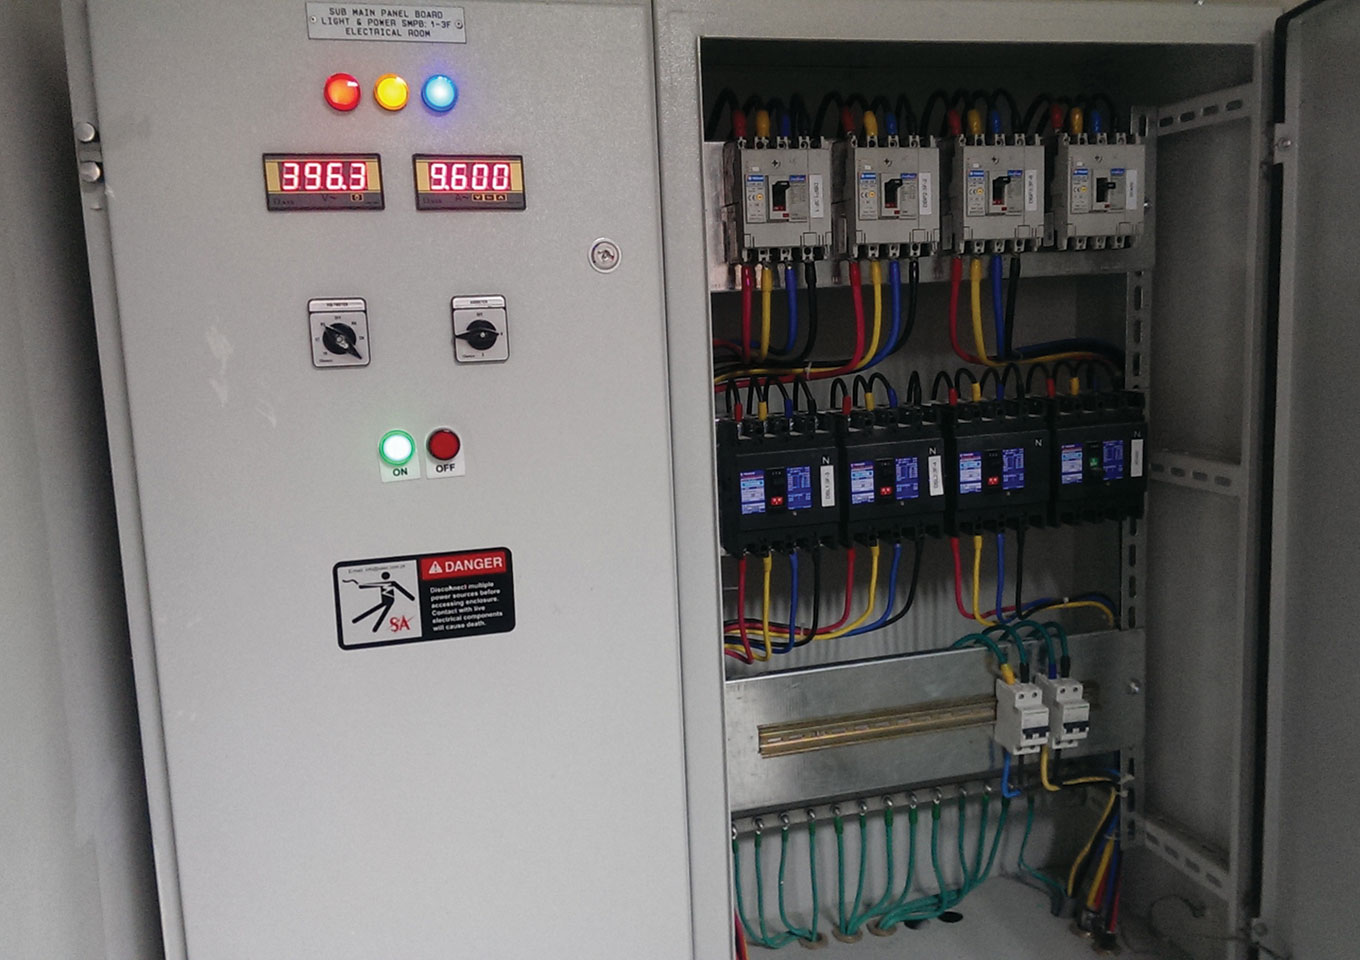 Lighting Power Sockets Distribution Panels Box Electrical Panel Buy Circuit Breaker All Type Of Including The Required Cabling Works Conduits Cable Tray And